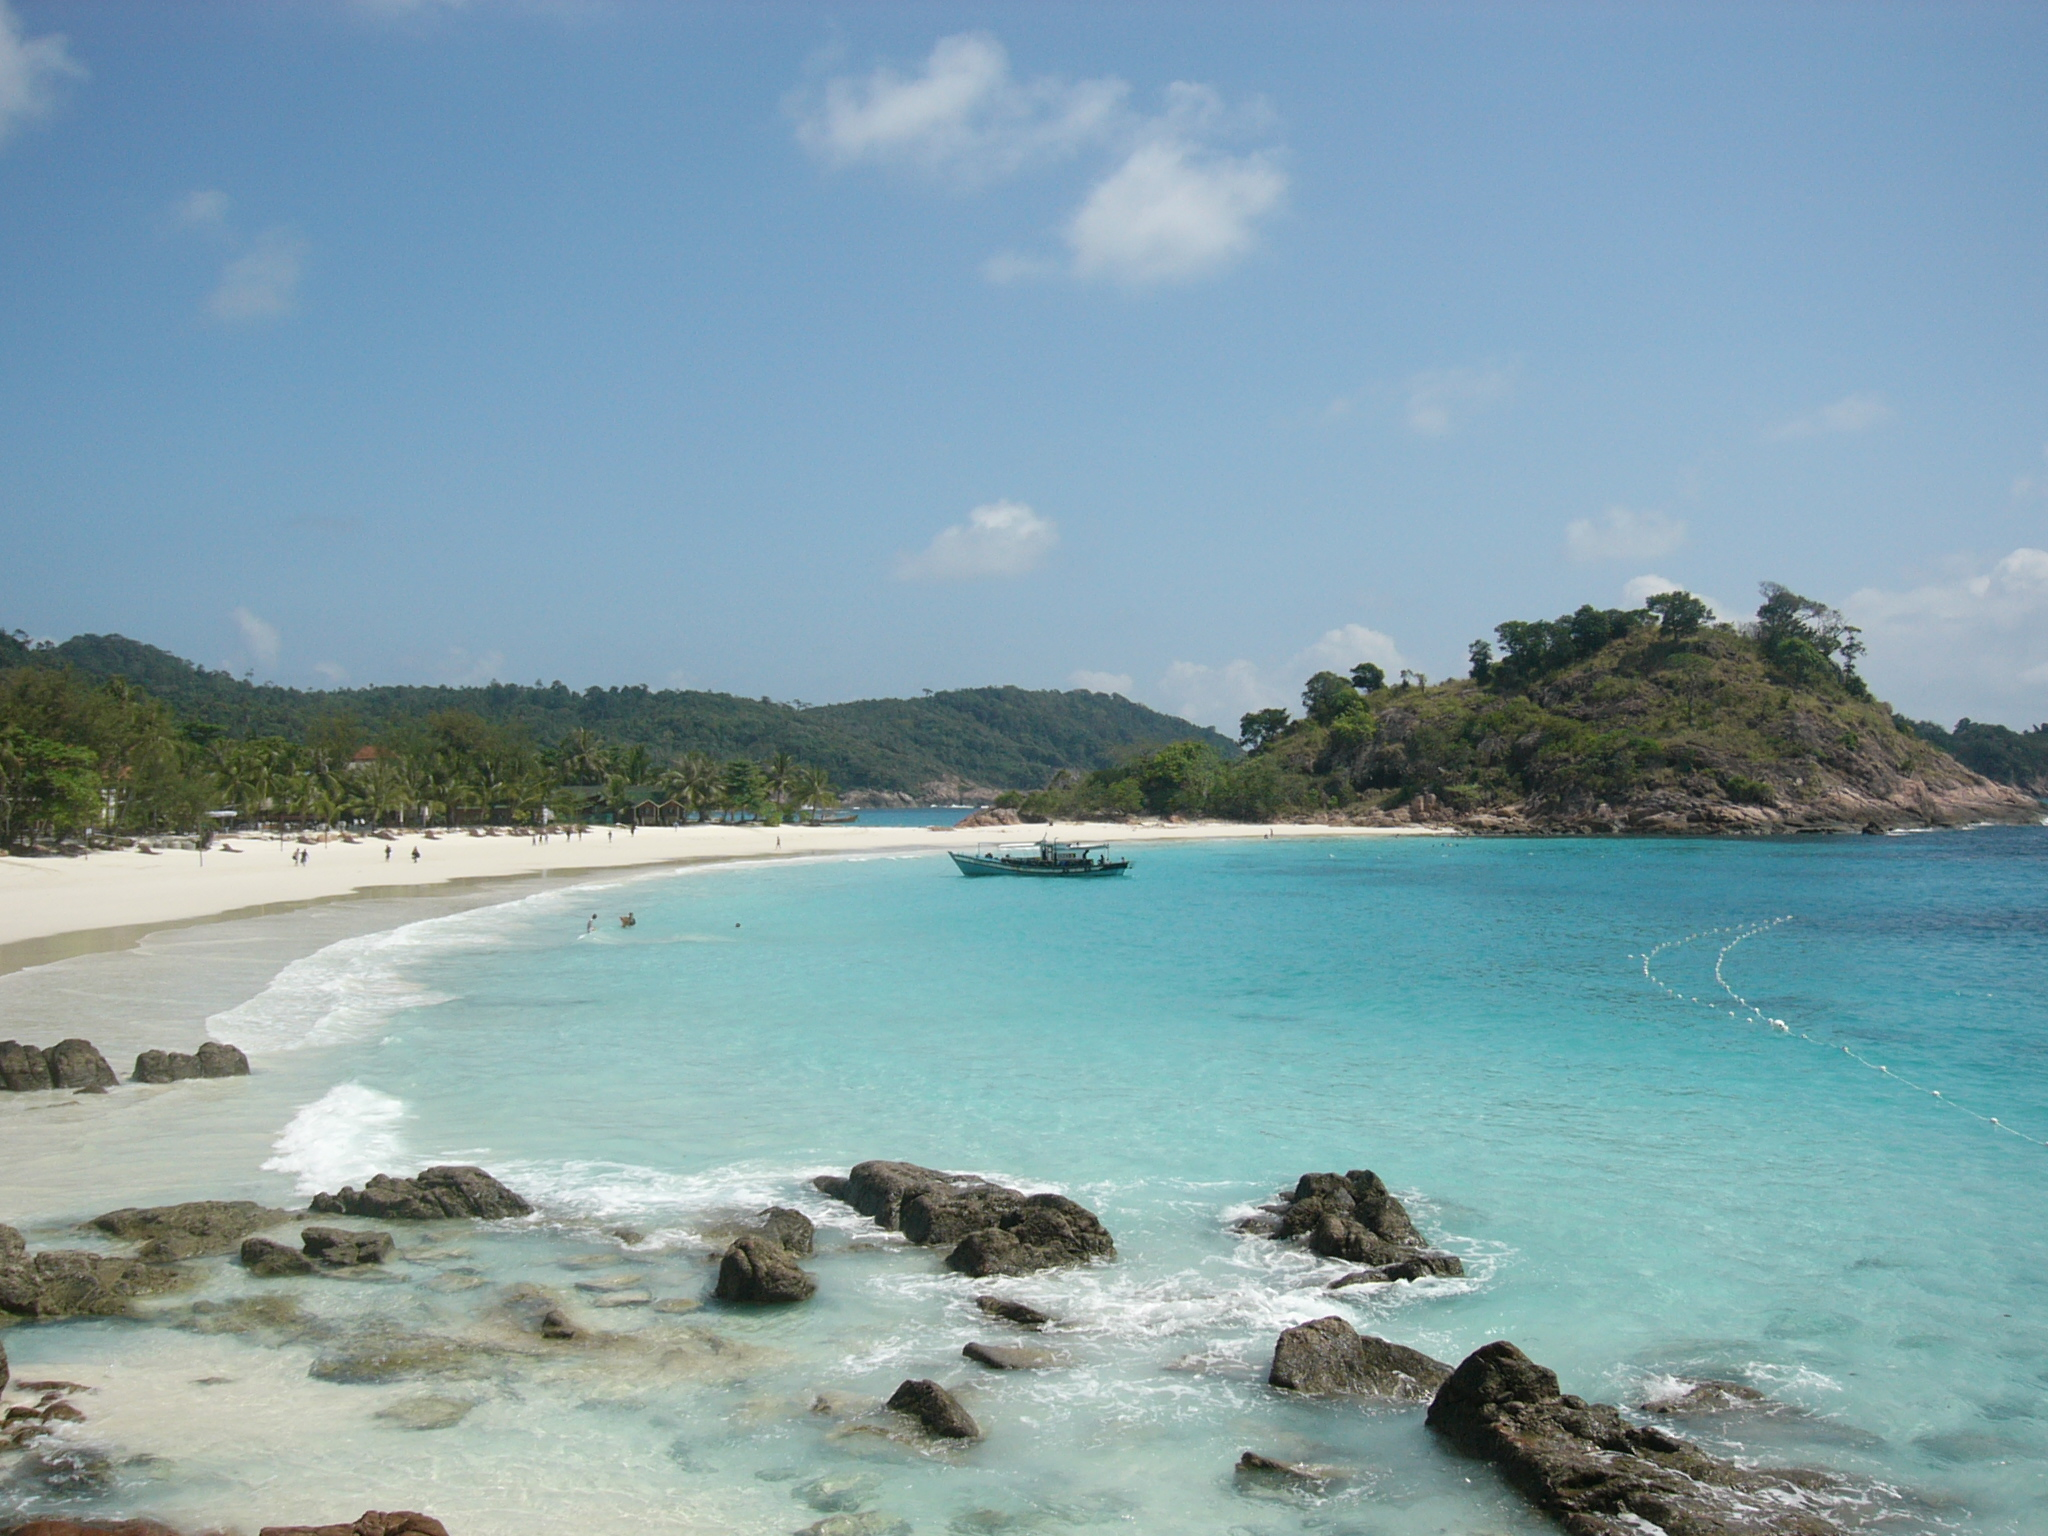 Pasir Panjang beach on Redang Island. It is one of the major tourist islands in the country.